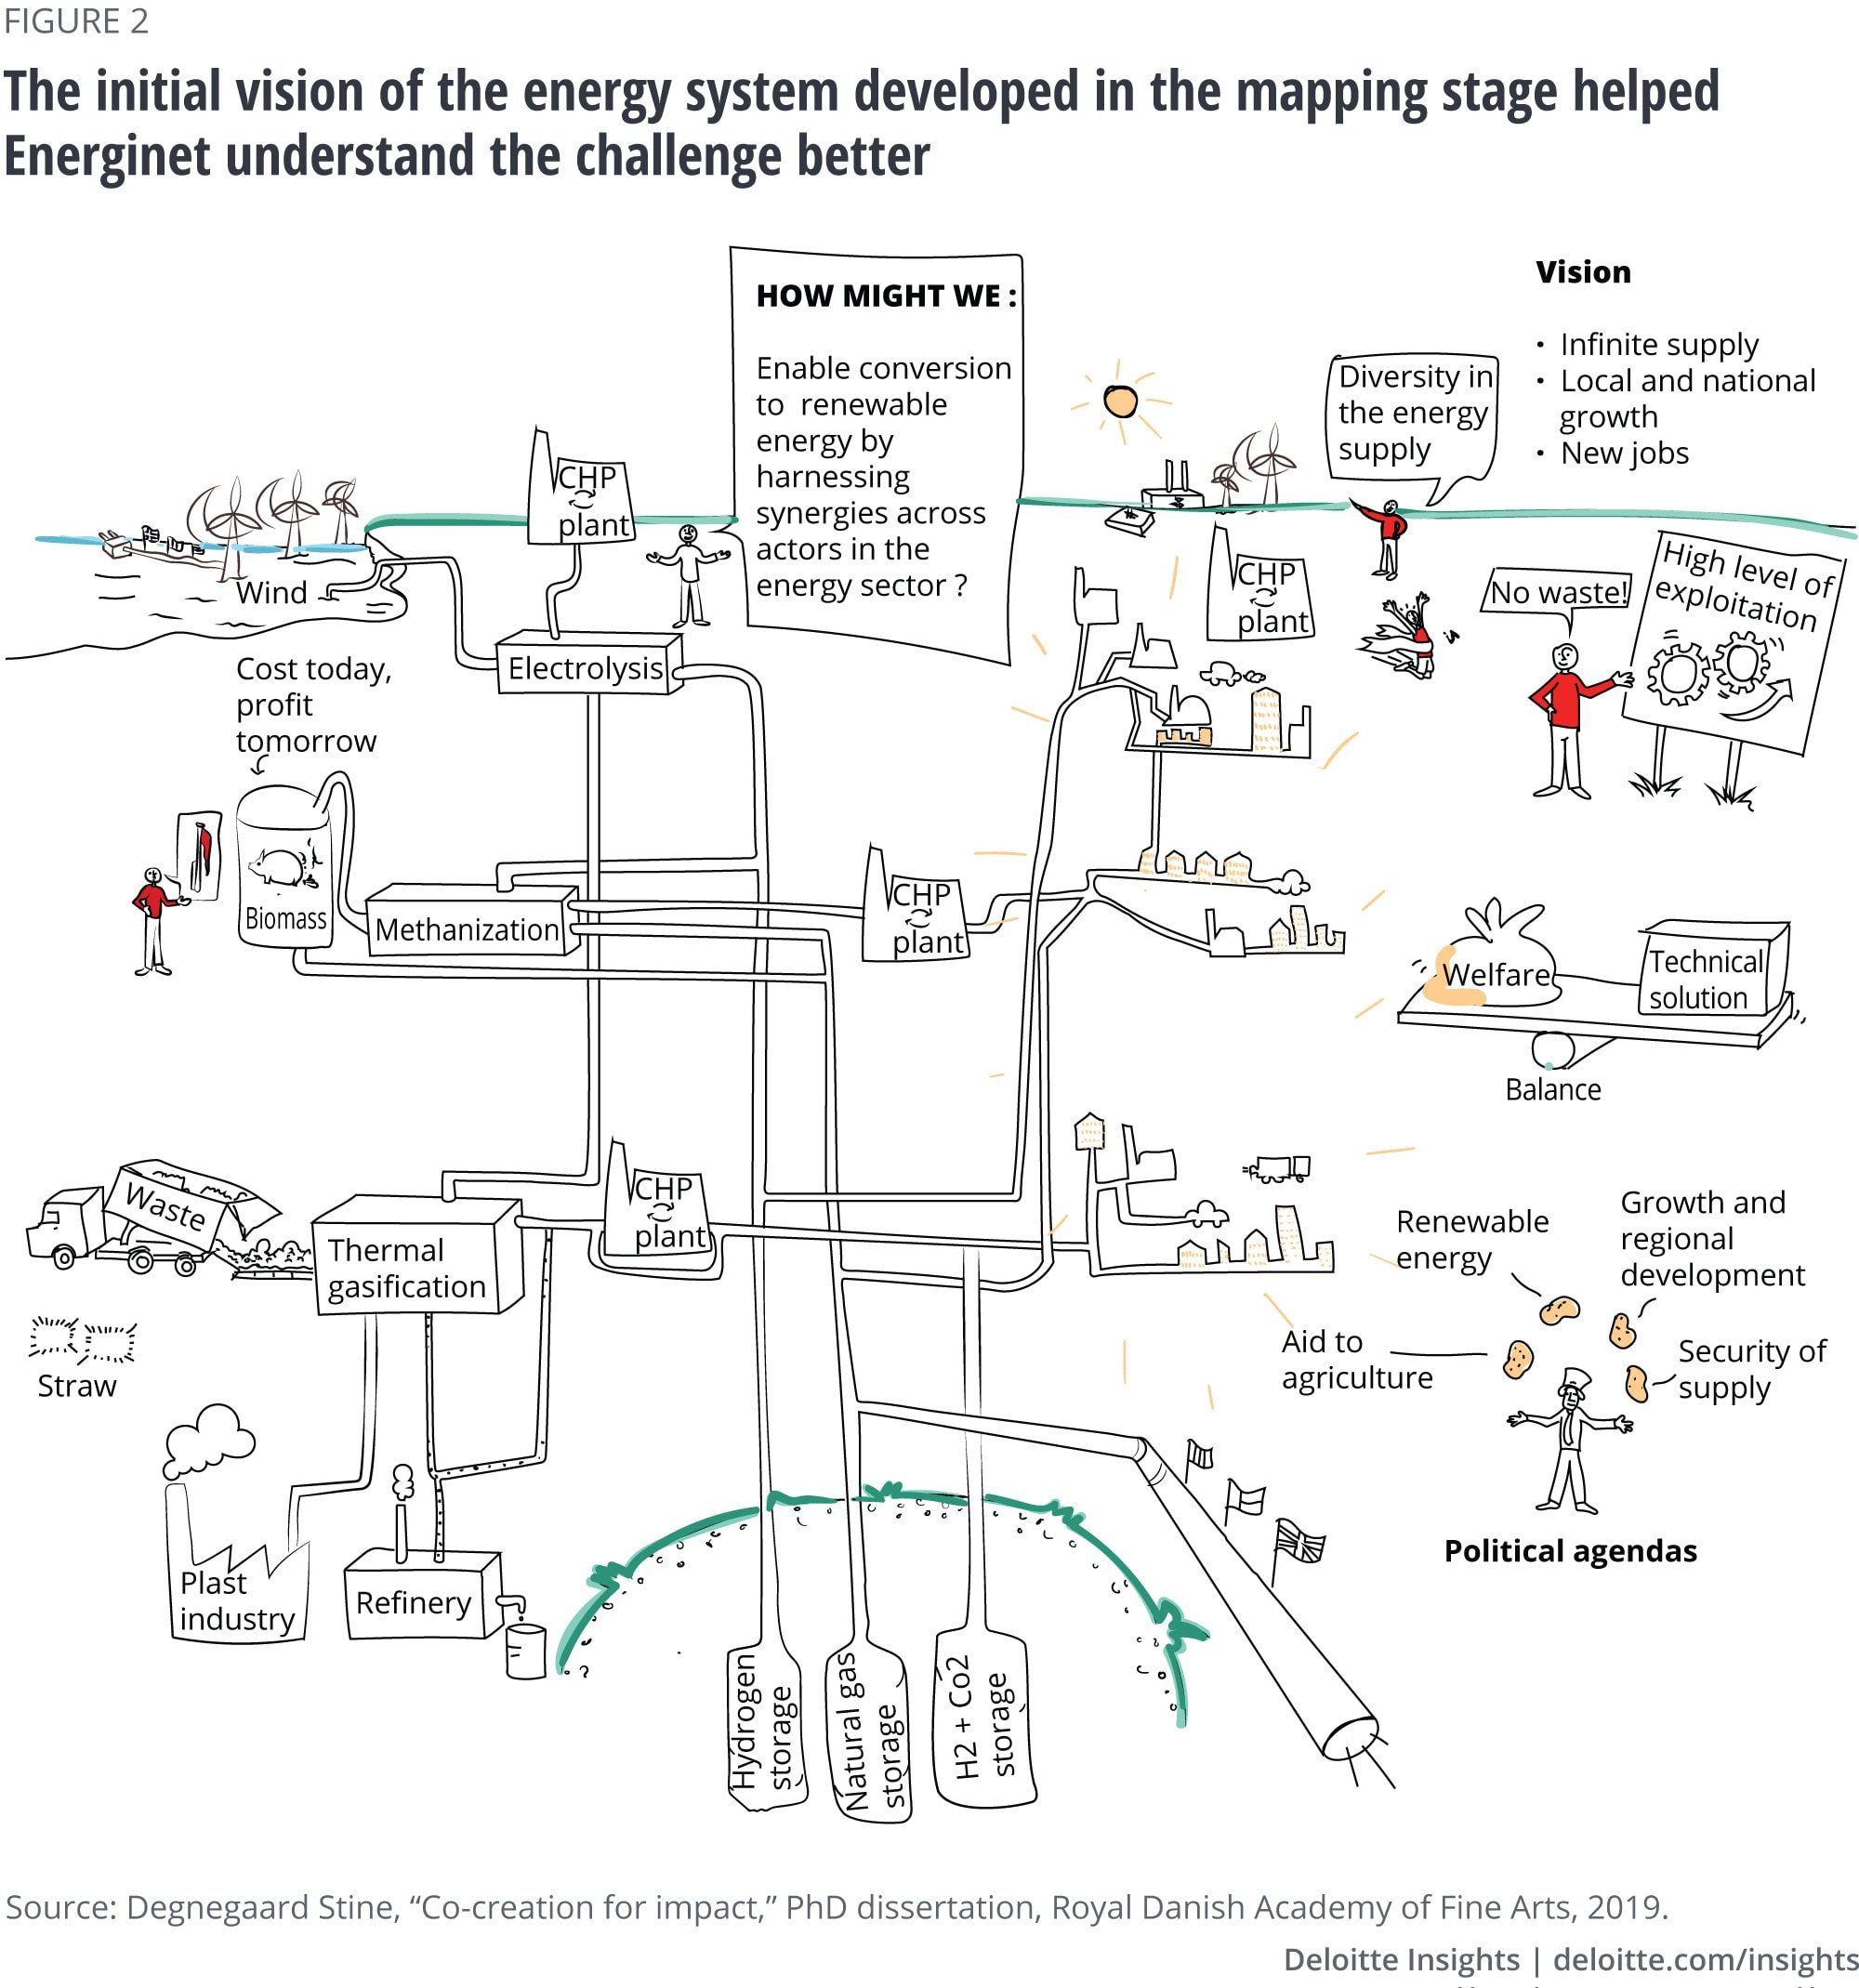 The initial vision of the energy system developed in the mapping stage helped Energinet understand the challenge better